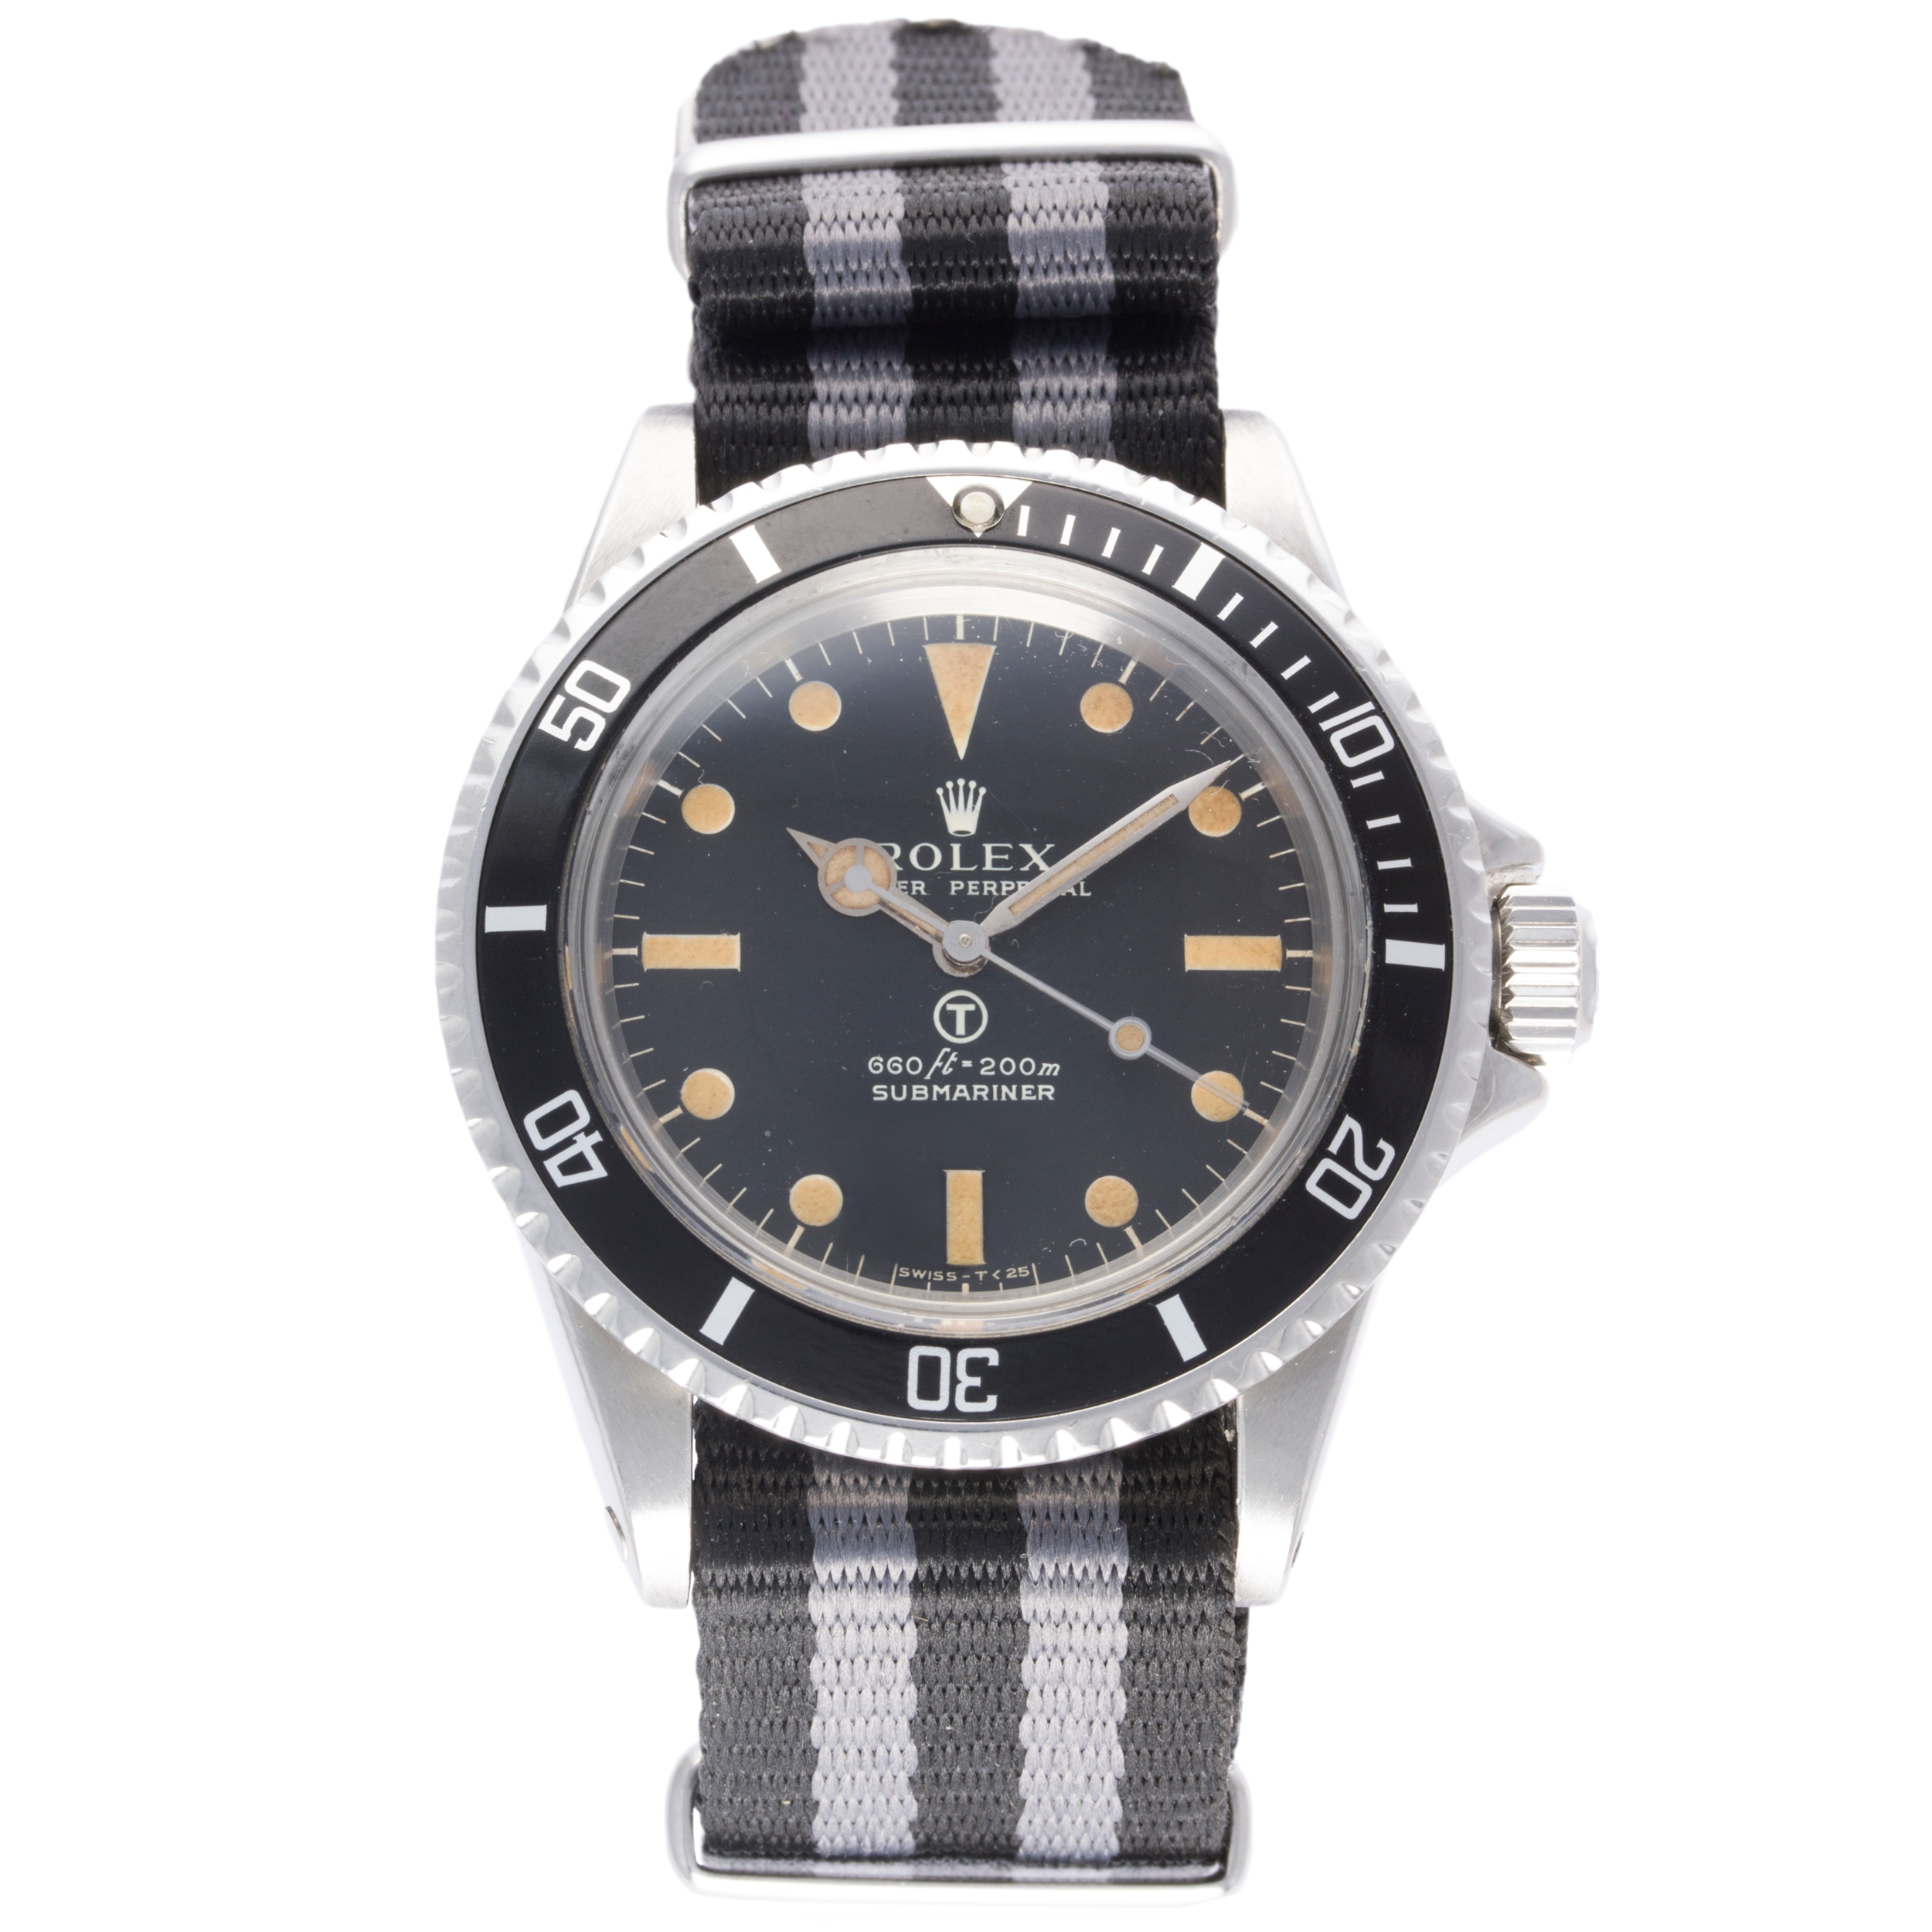 Lot 298 - Rolex Submariner Ref. 5513, Issued to the British Military in 1971